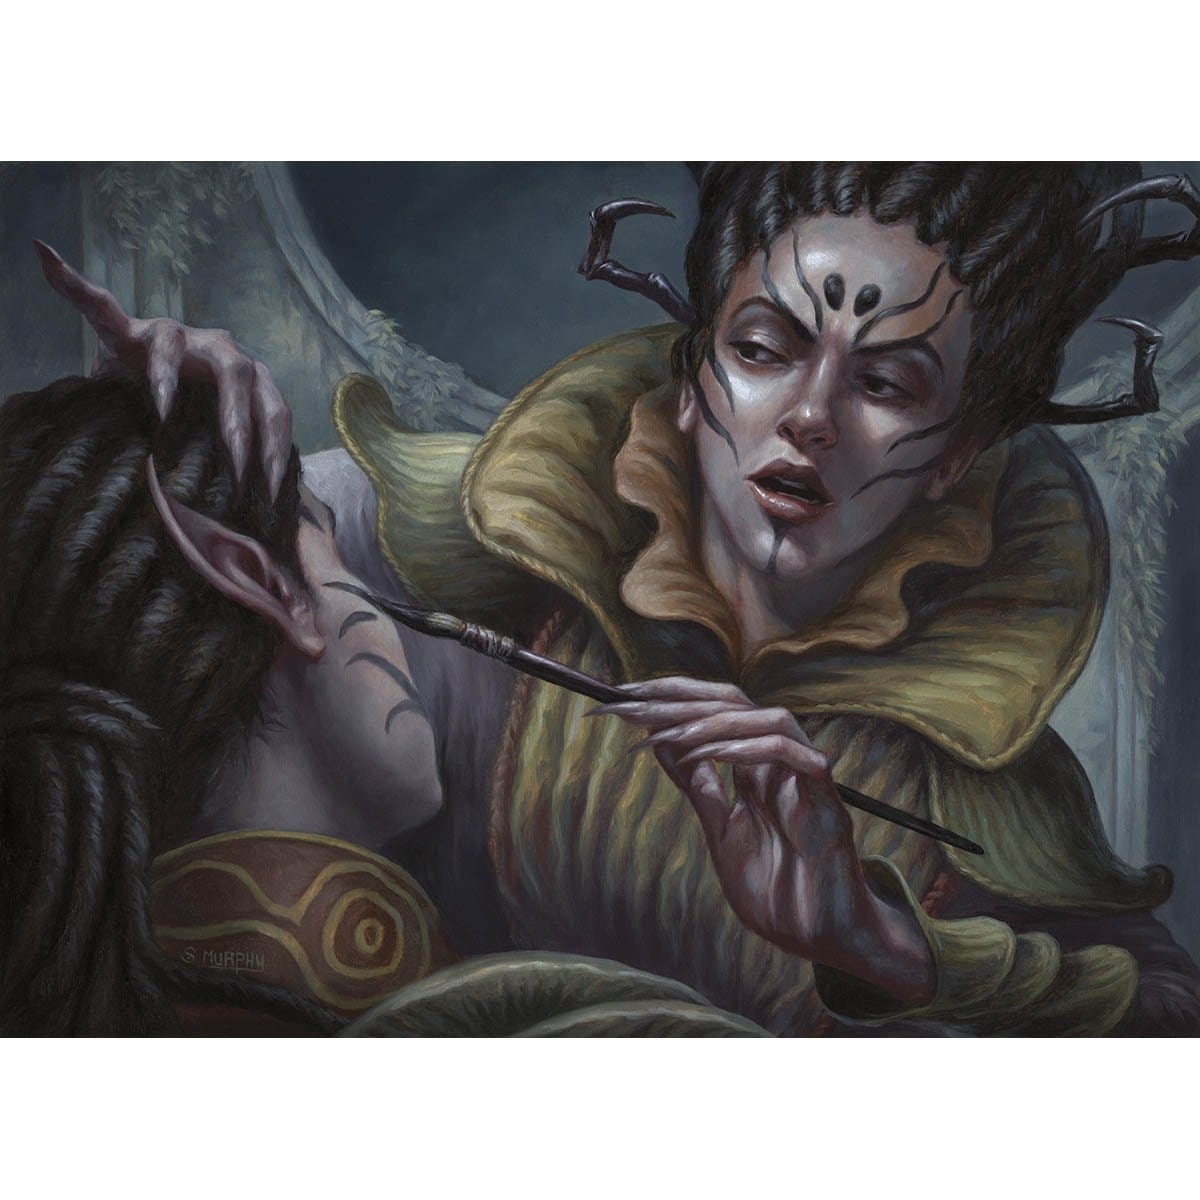 Moodmark Painter Print - Print - Original Magic Art - Accessories for Magic the Gathering and other card games